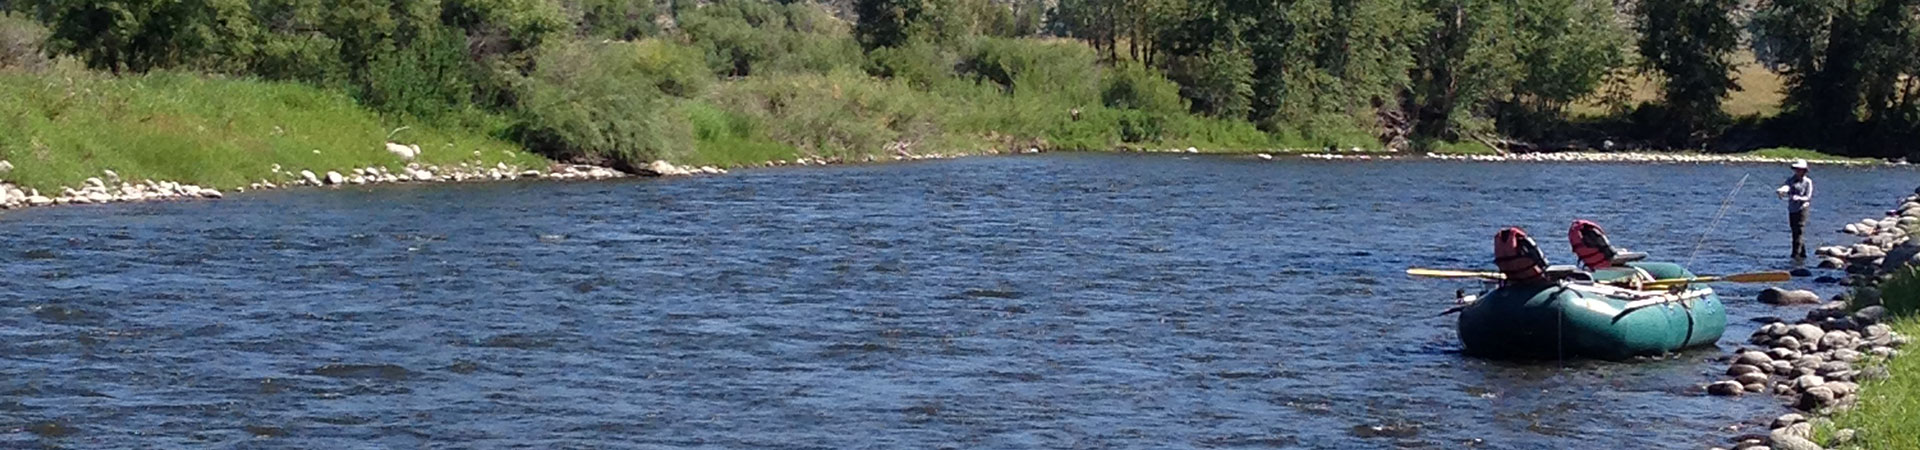 Montana Fly Fishing Stillwater River